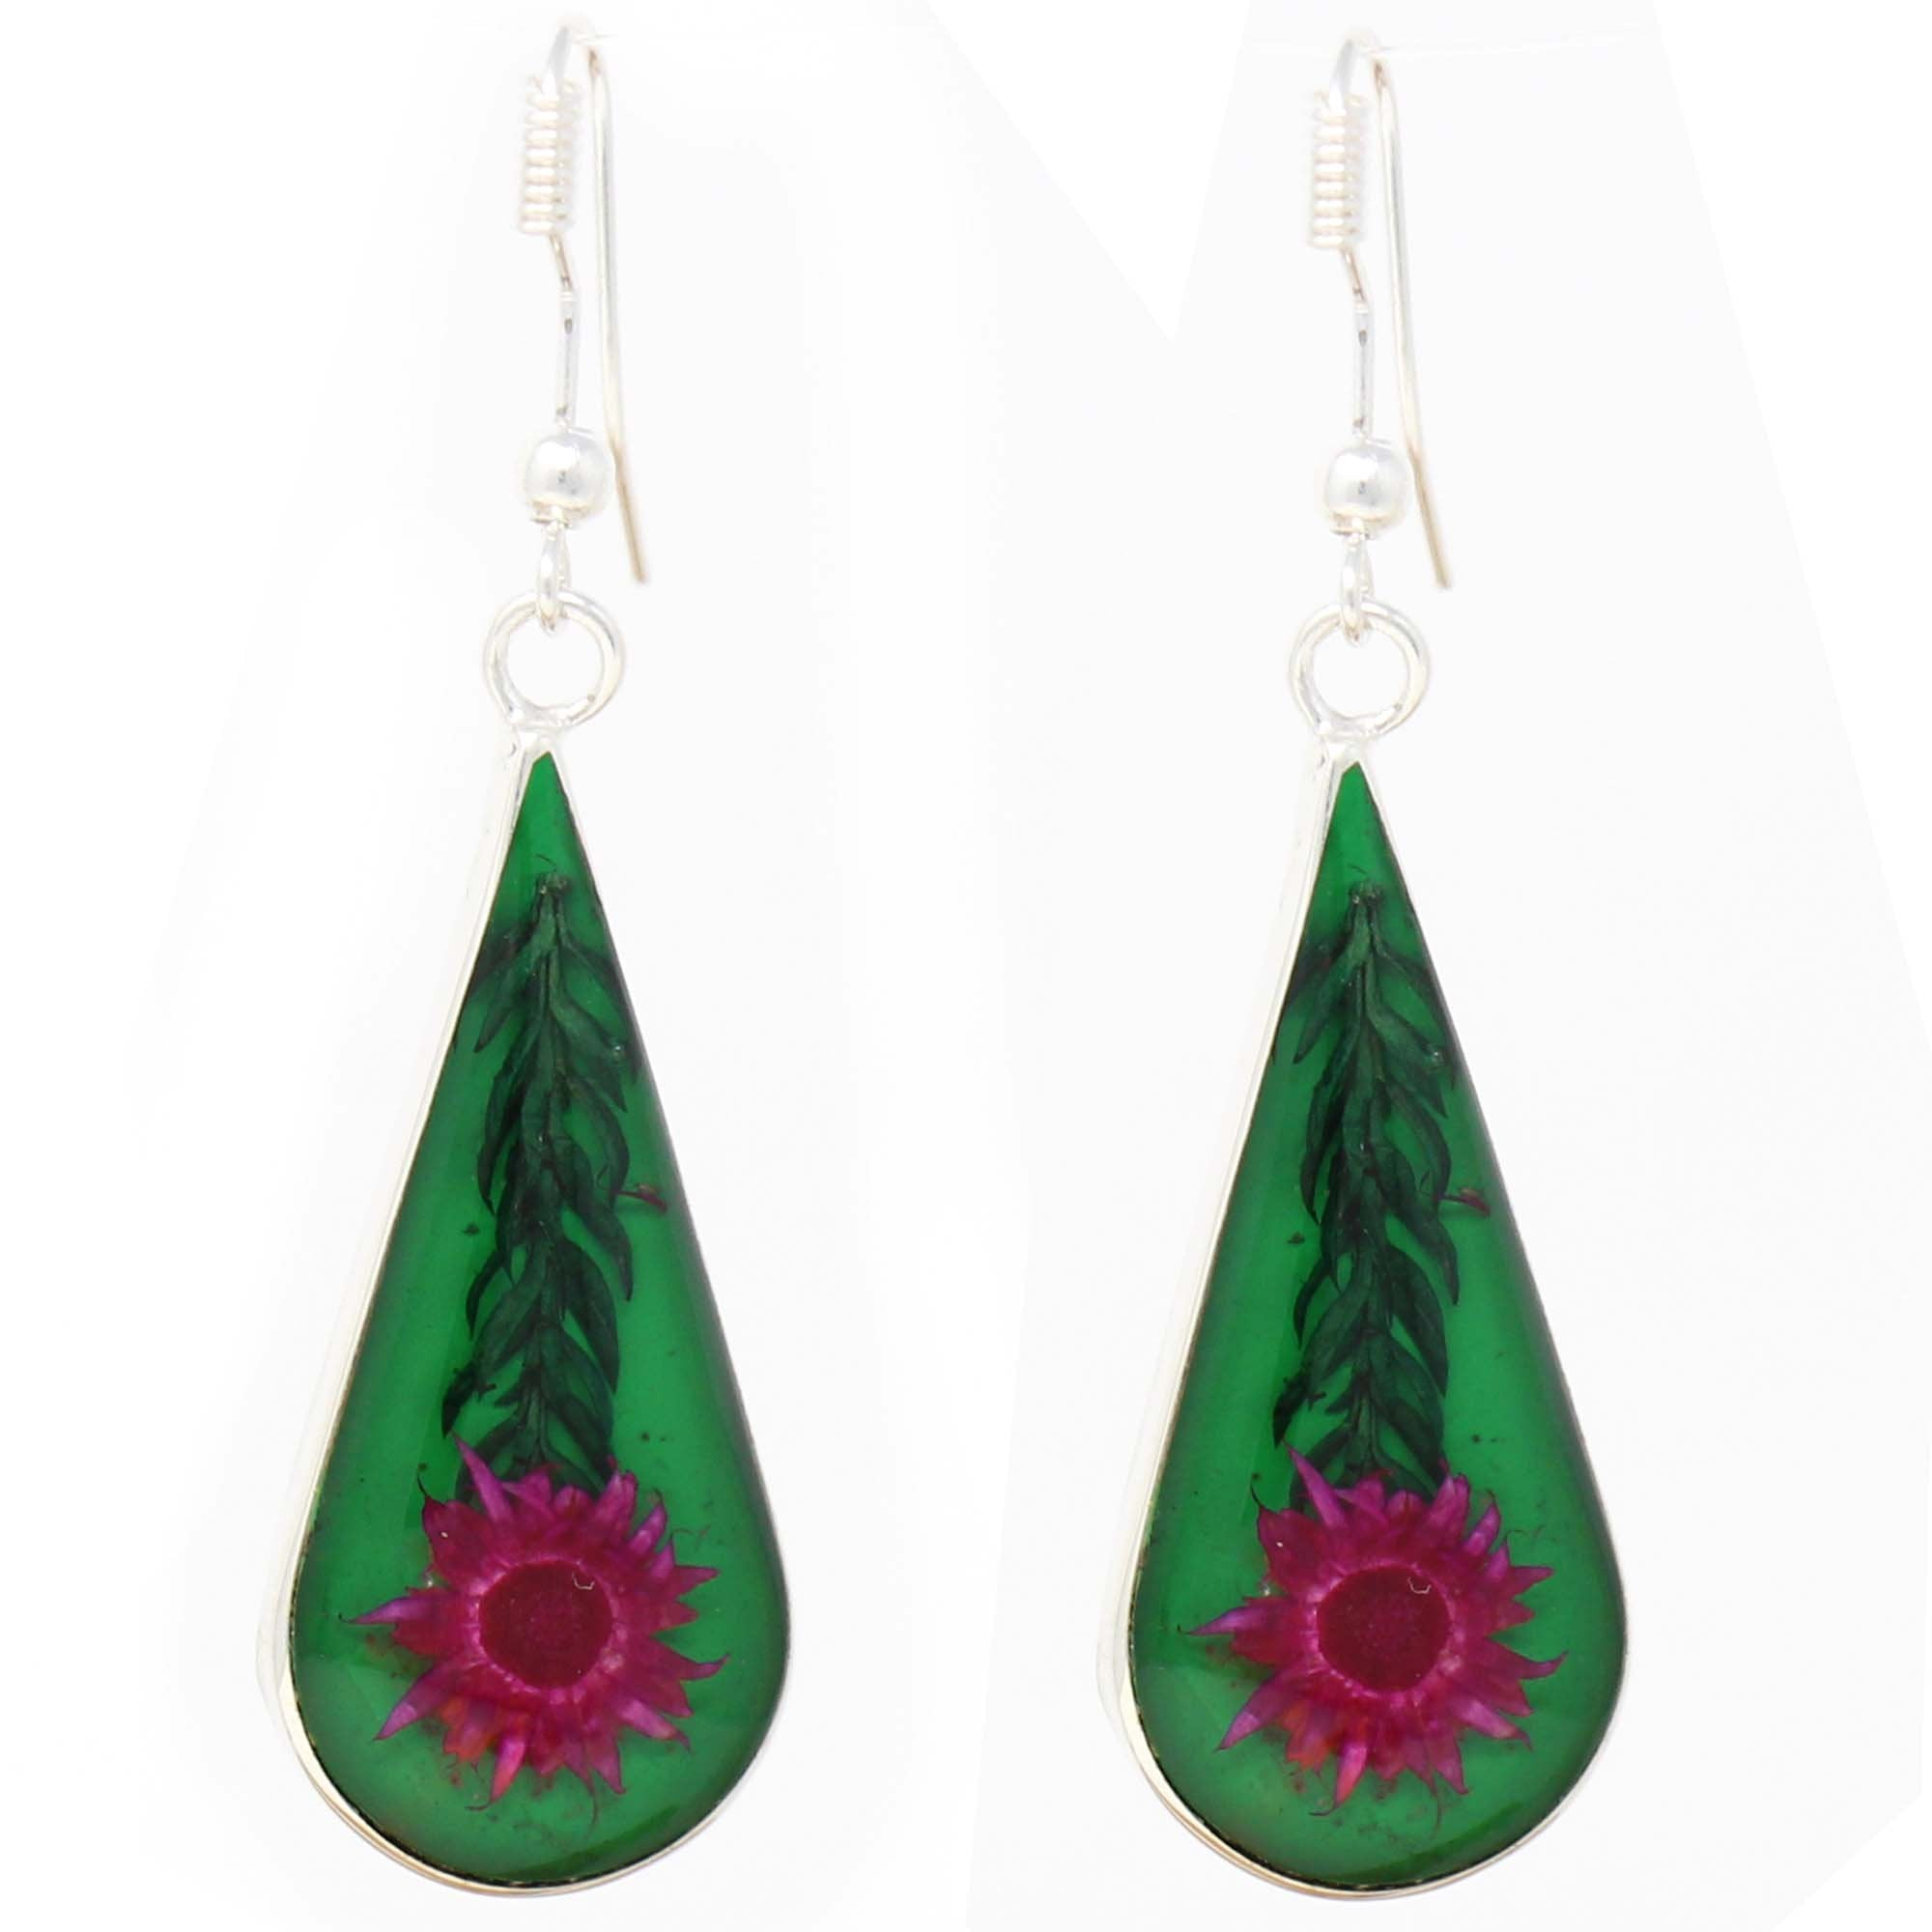 Pink Pressed Flower Teardrop Earrings